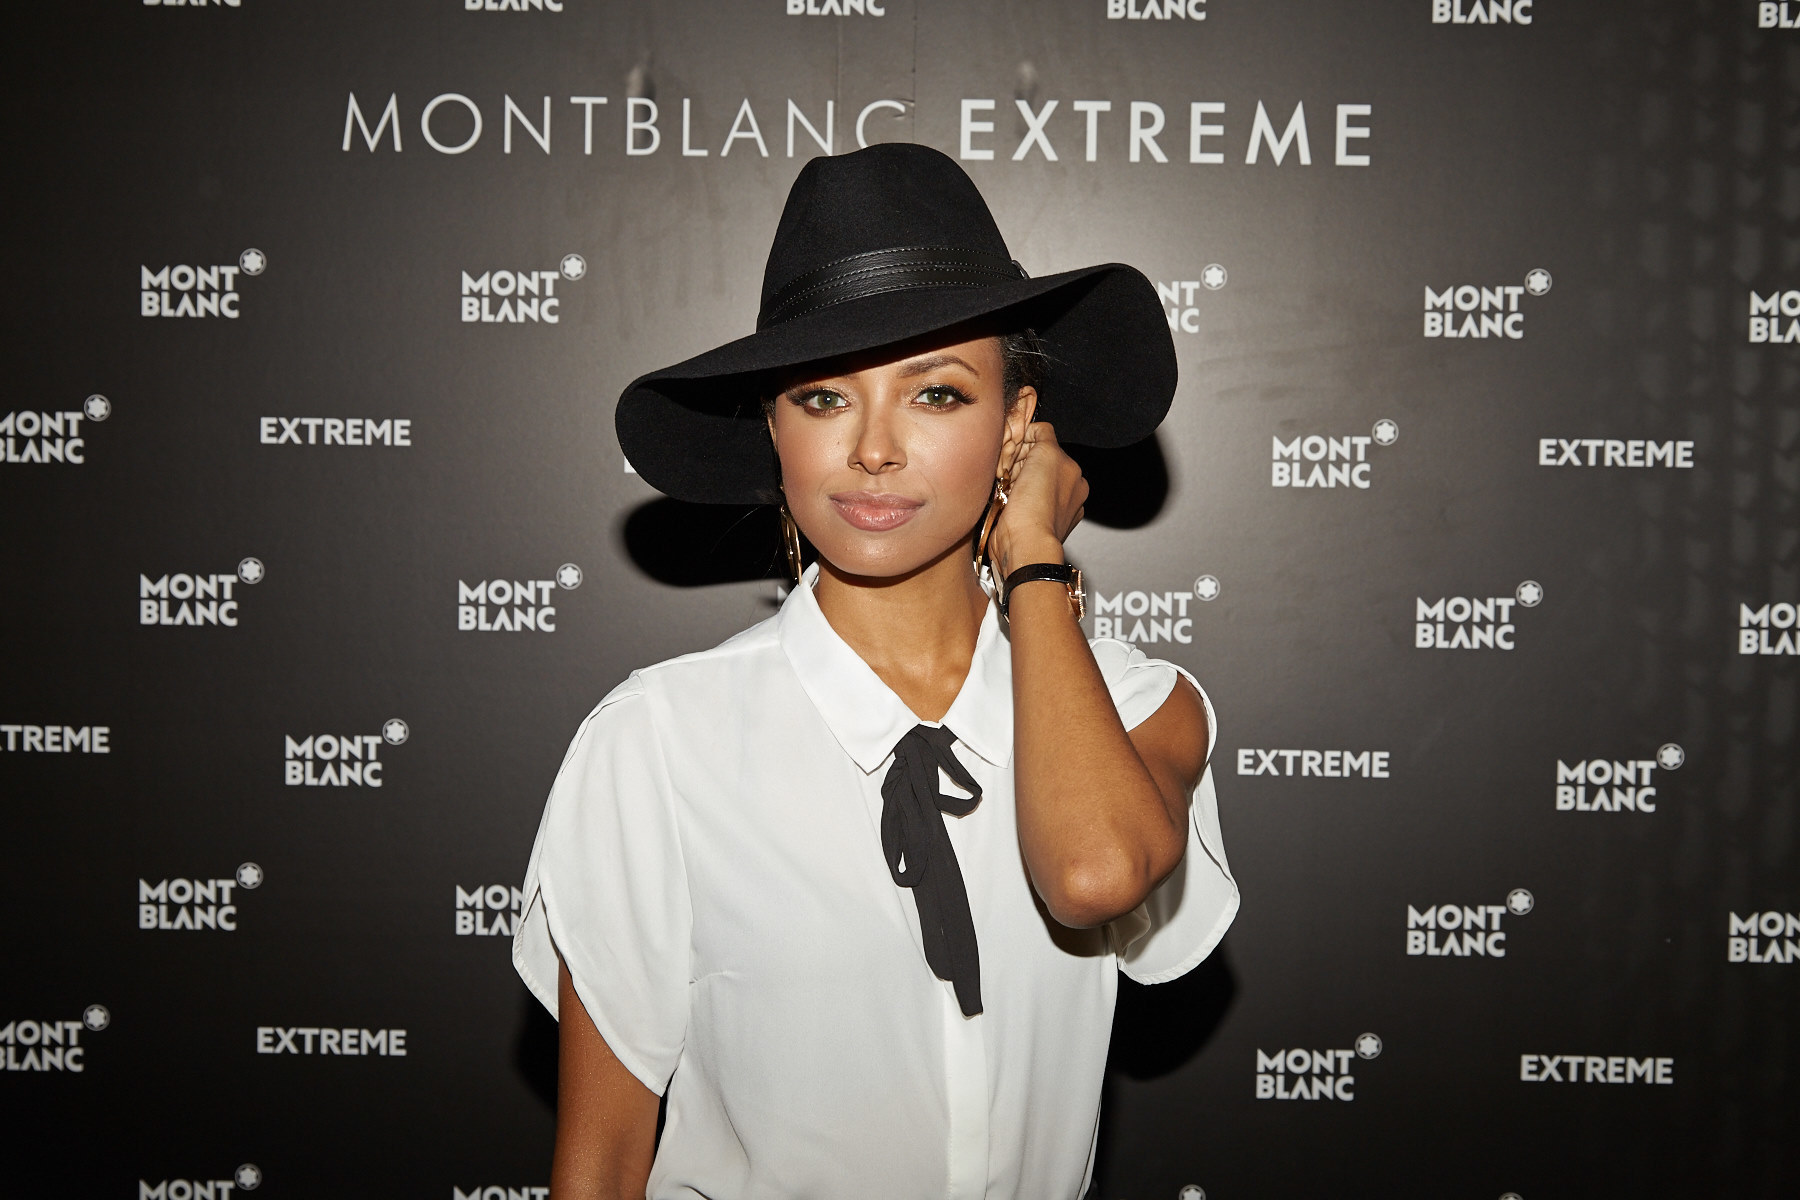 ATLANTA, GA - SEPTEMBER 25:  Kat Graham attends the Montblanc celebration for the grand re-opening of the Atlanta Boutique with Kat Graham, Dave Annable and Kristen Ledlow September 25, 2014 in Atlanta, Georgia.  (Photo by Craig Bromley/Getty Images for Montblanc)